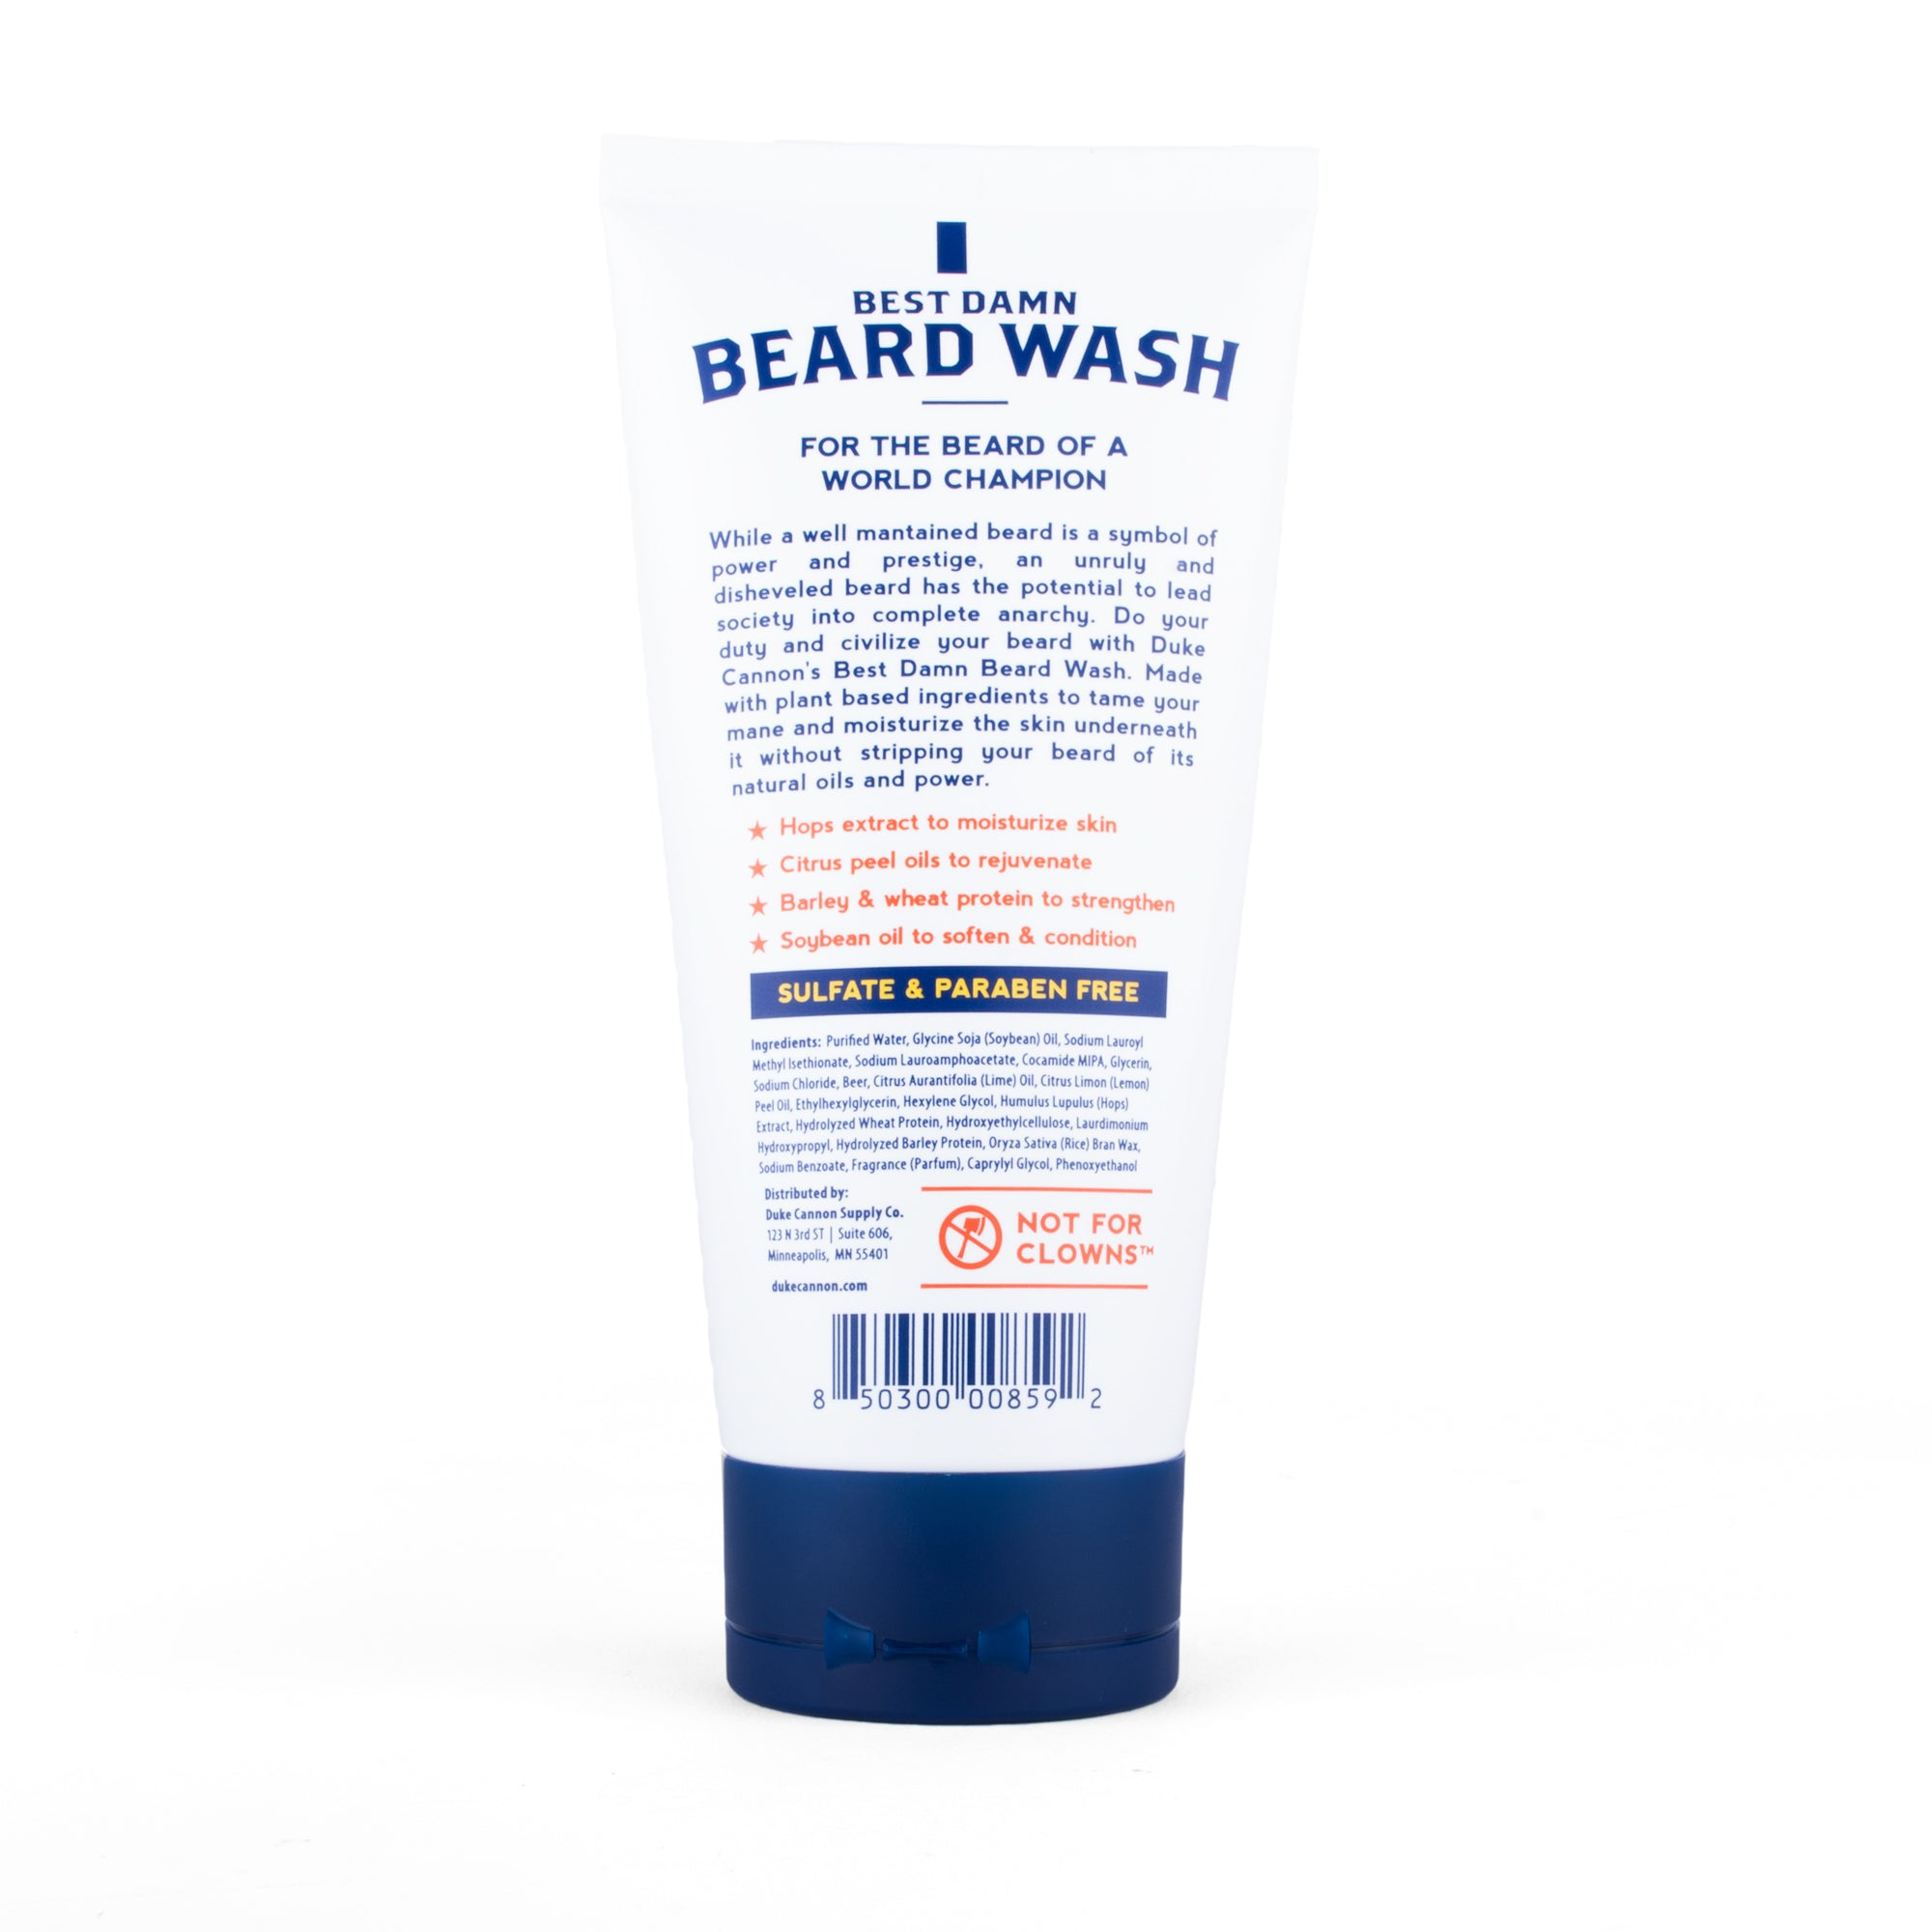 Best Damn Beard Wash - Duke Cannon